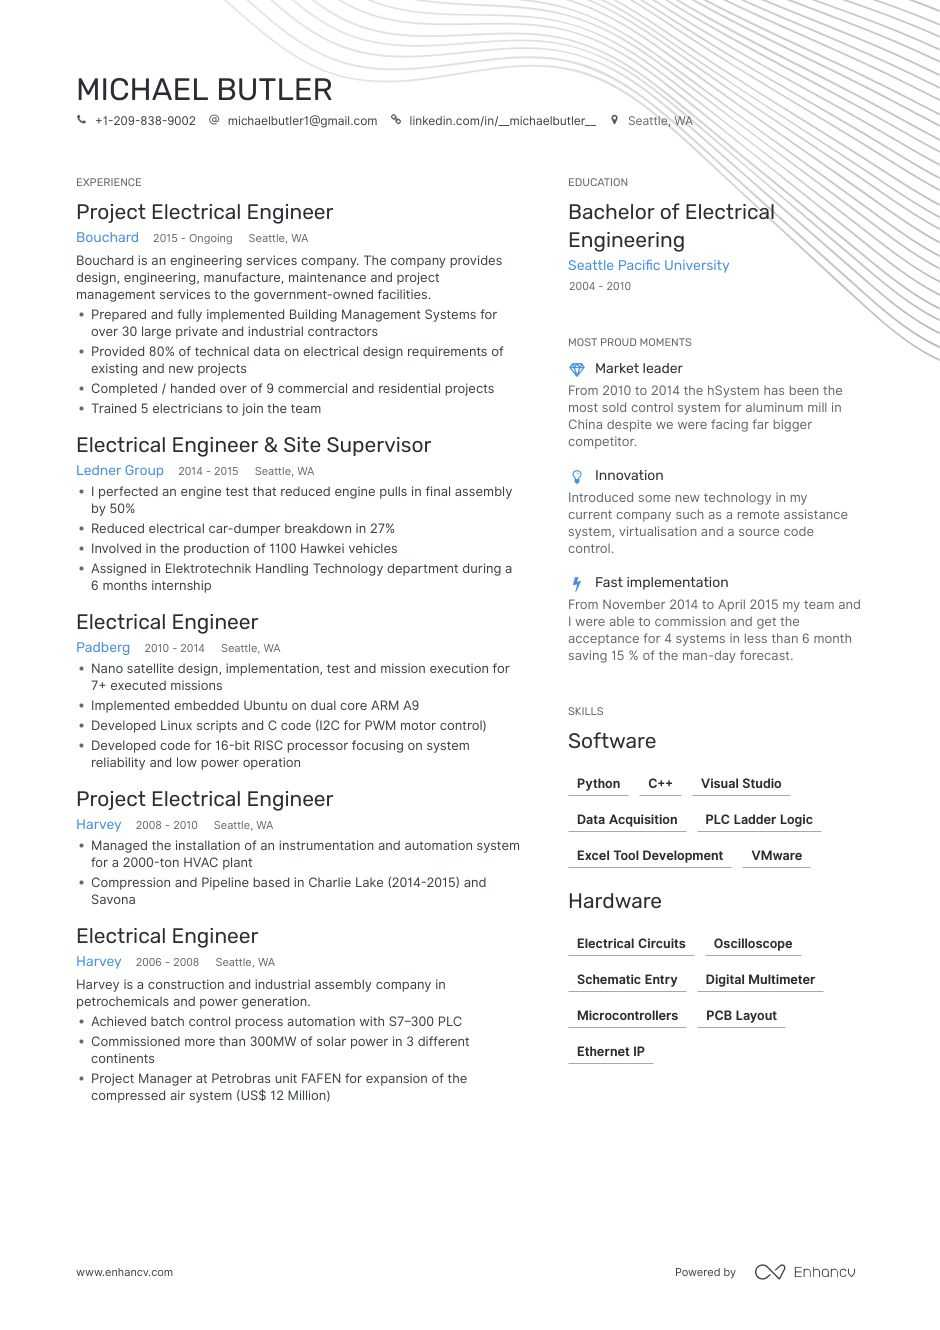 electrical engineer resume examples pro tips featured enhancv technical skills for Resume Technical Skills For Electrical Engineer Resume